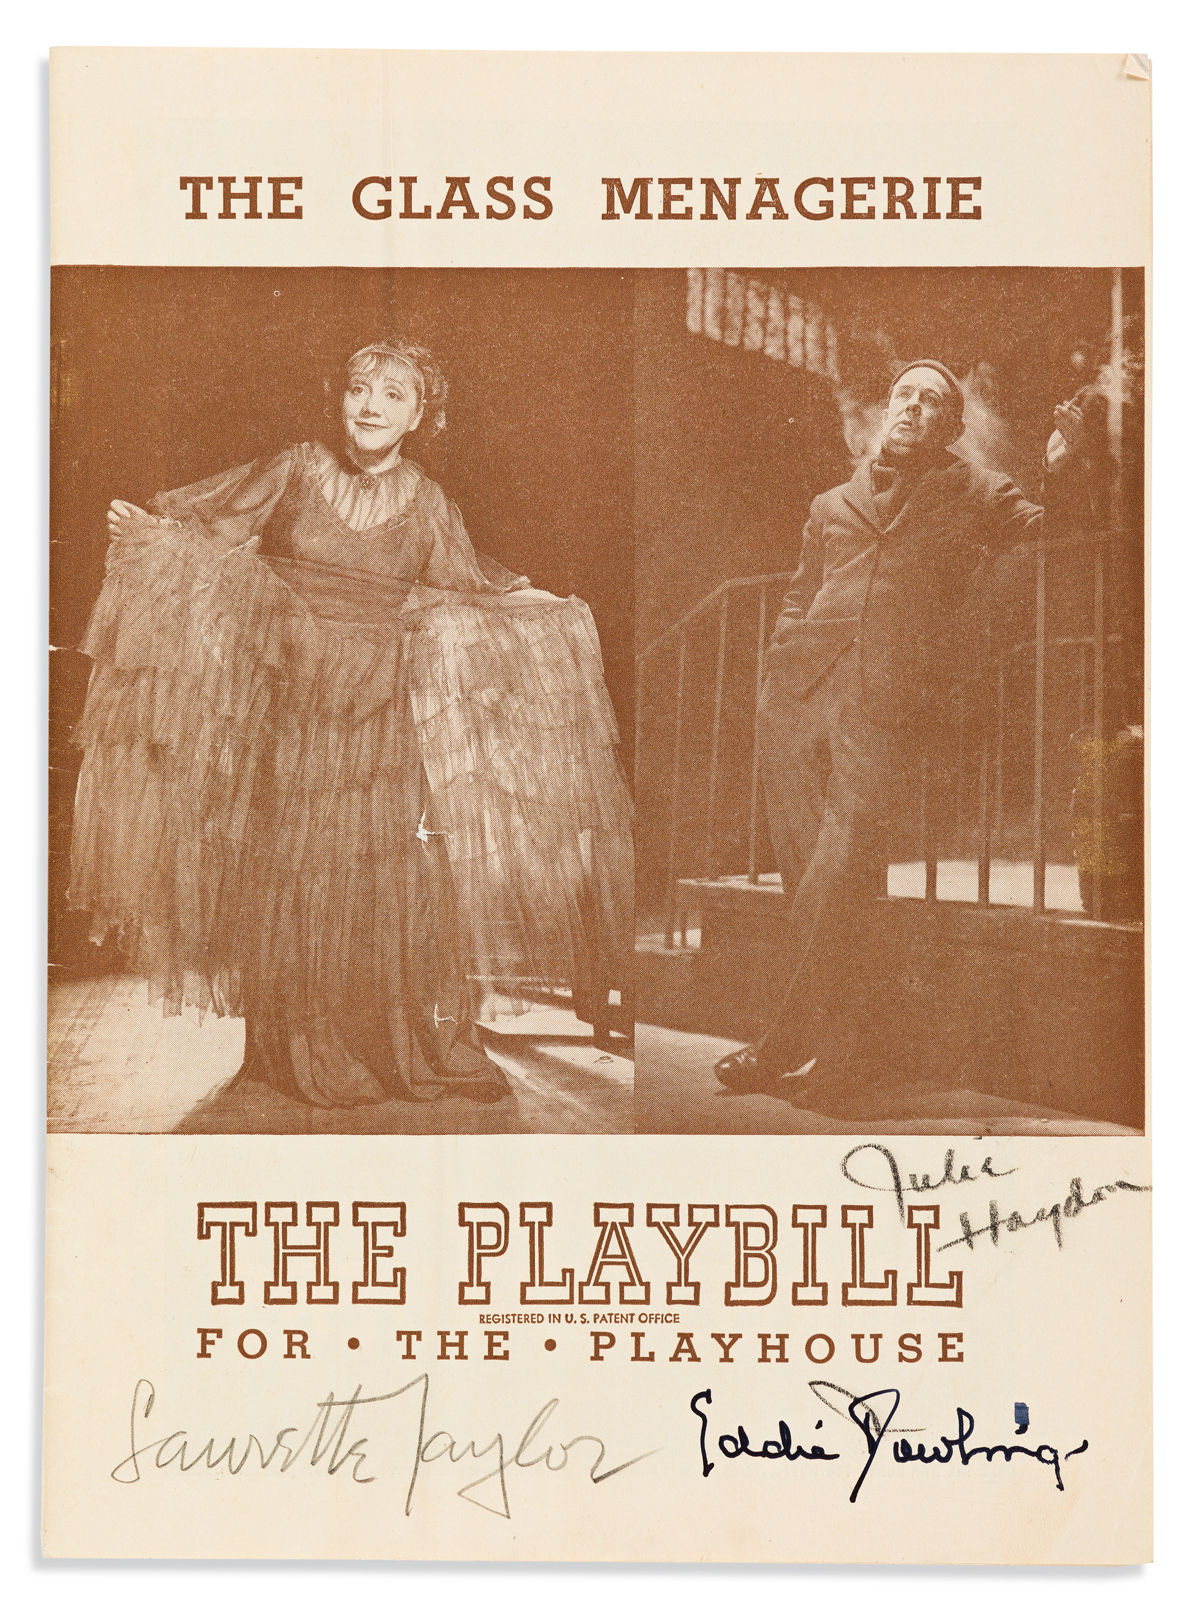 (PLAYBILLS.) Playbill from the 1945 Broadway production of The Glass Menagerie, Signed on the cover by Laurette Taylor, Julie Haydon, a